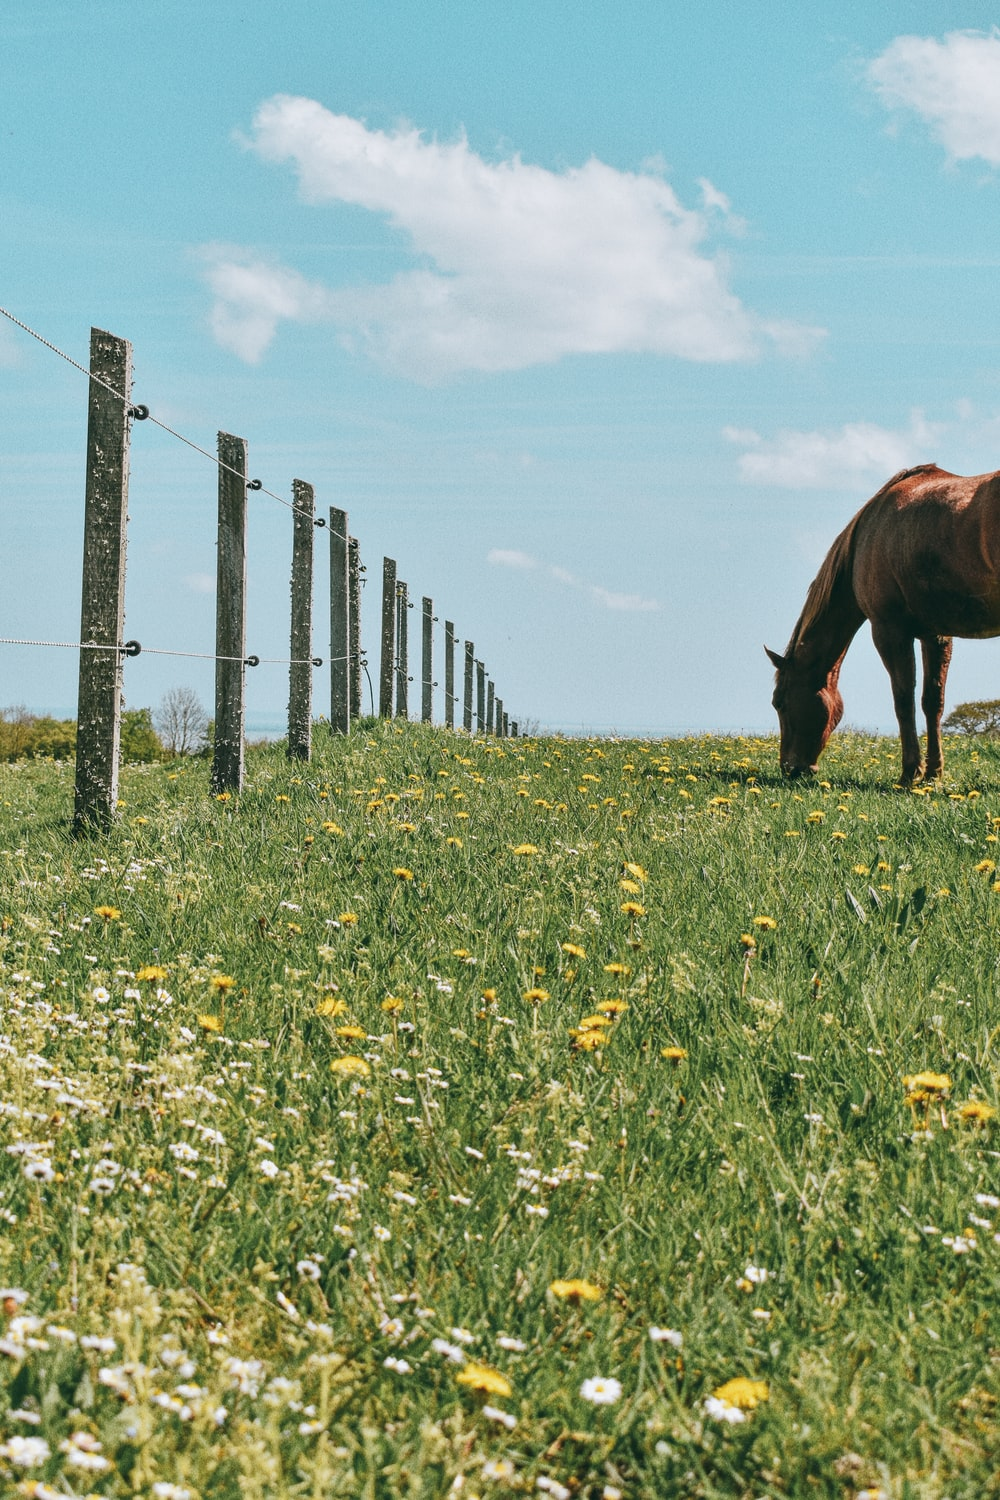 brown horse eating grass on green grass field during daytime